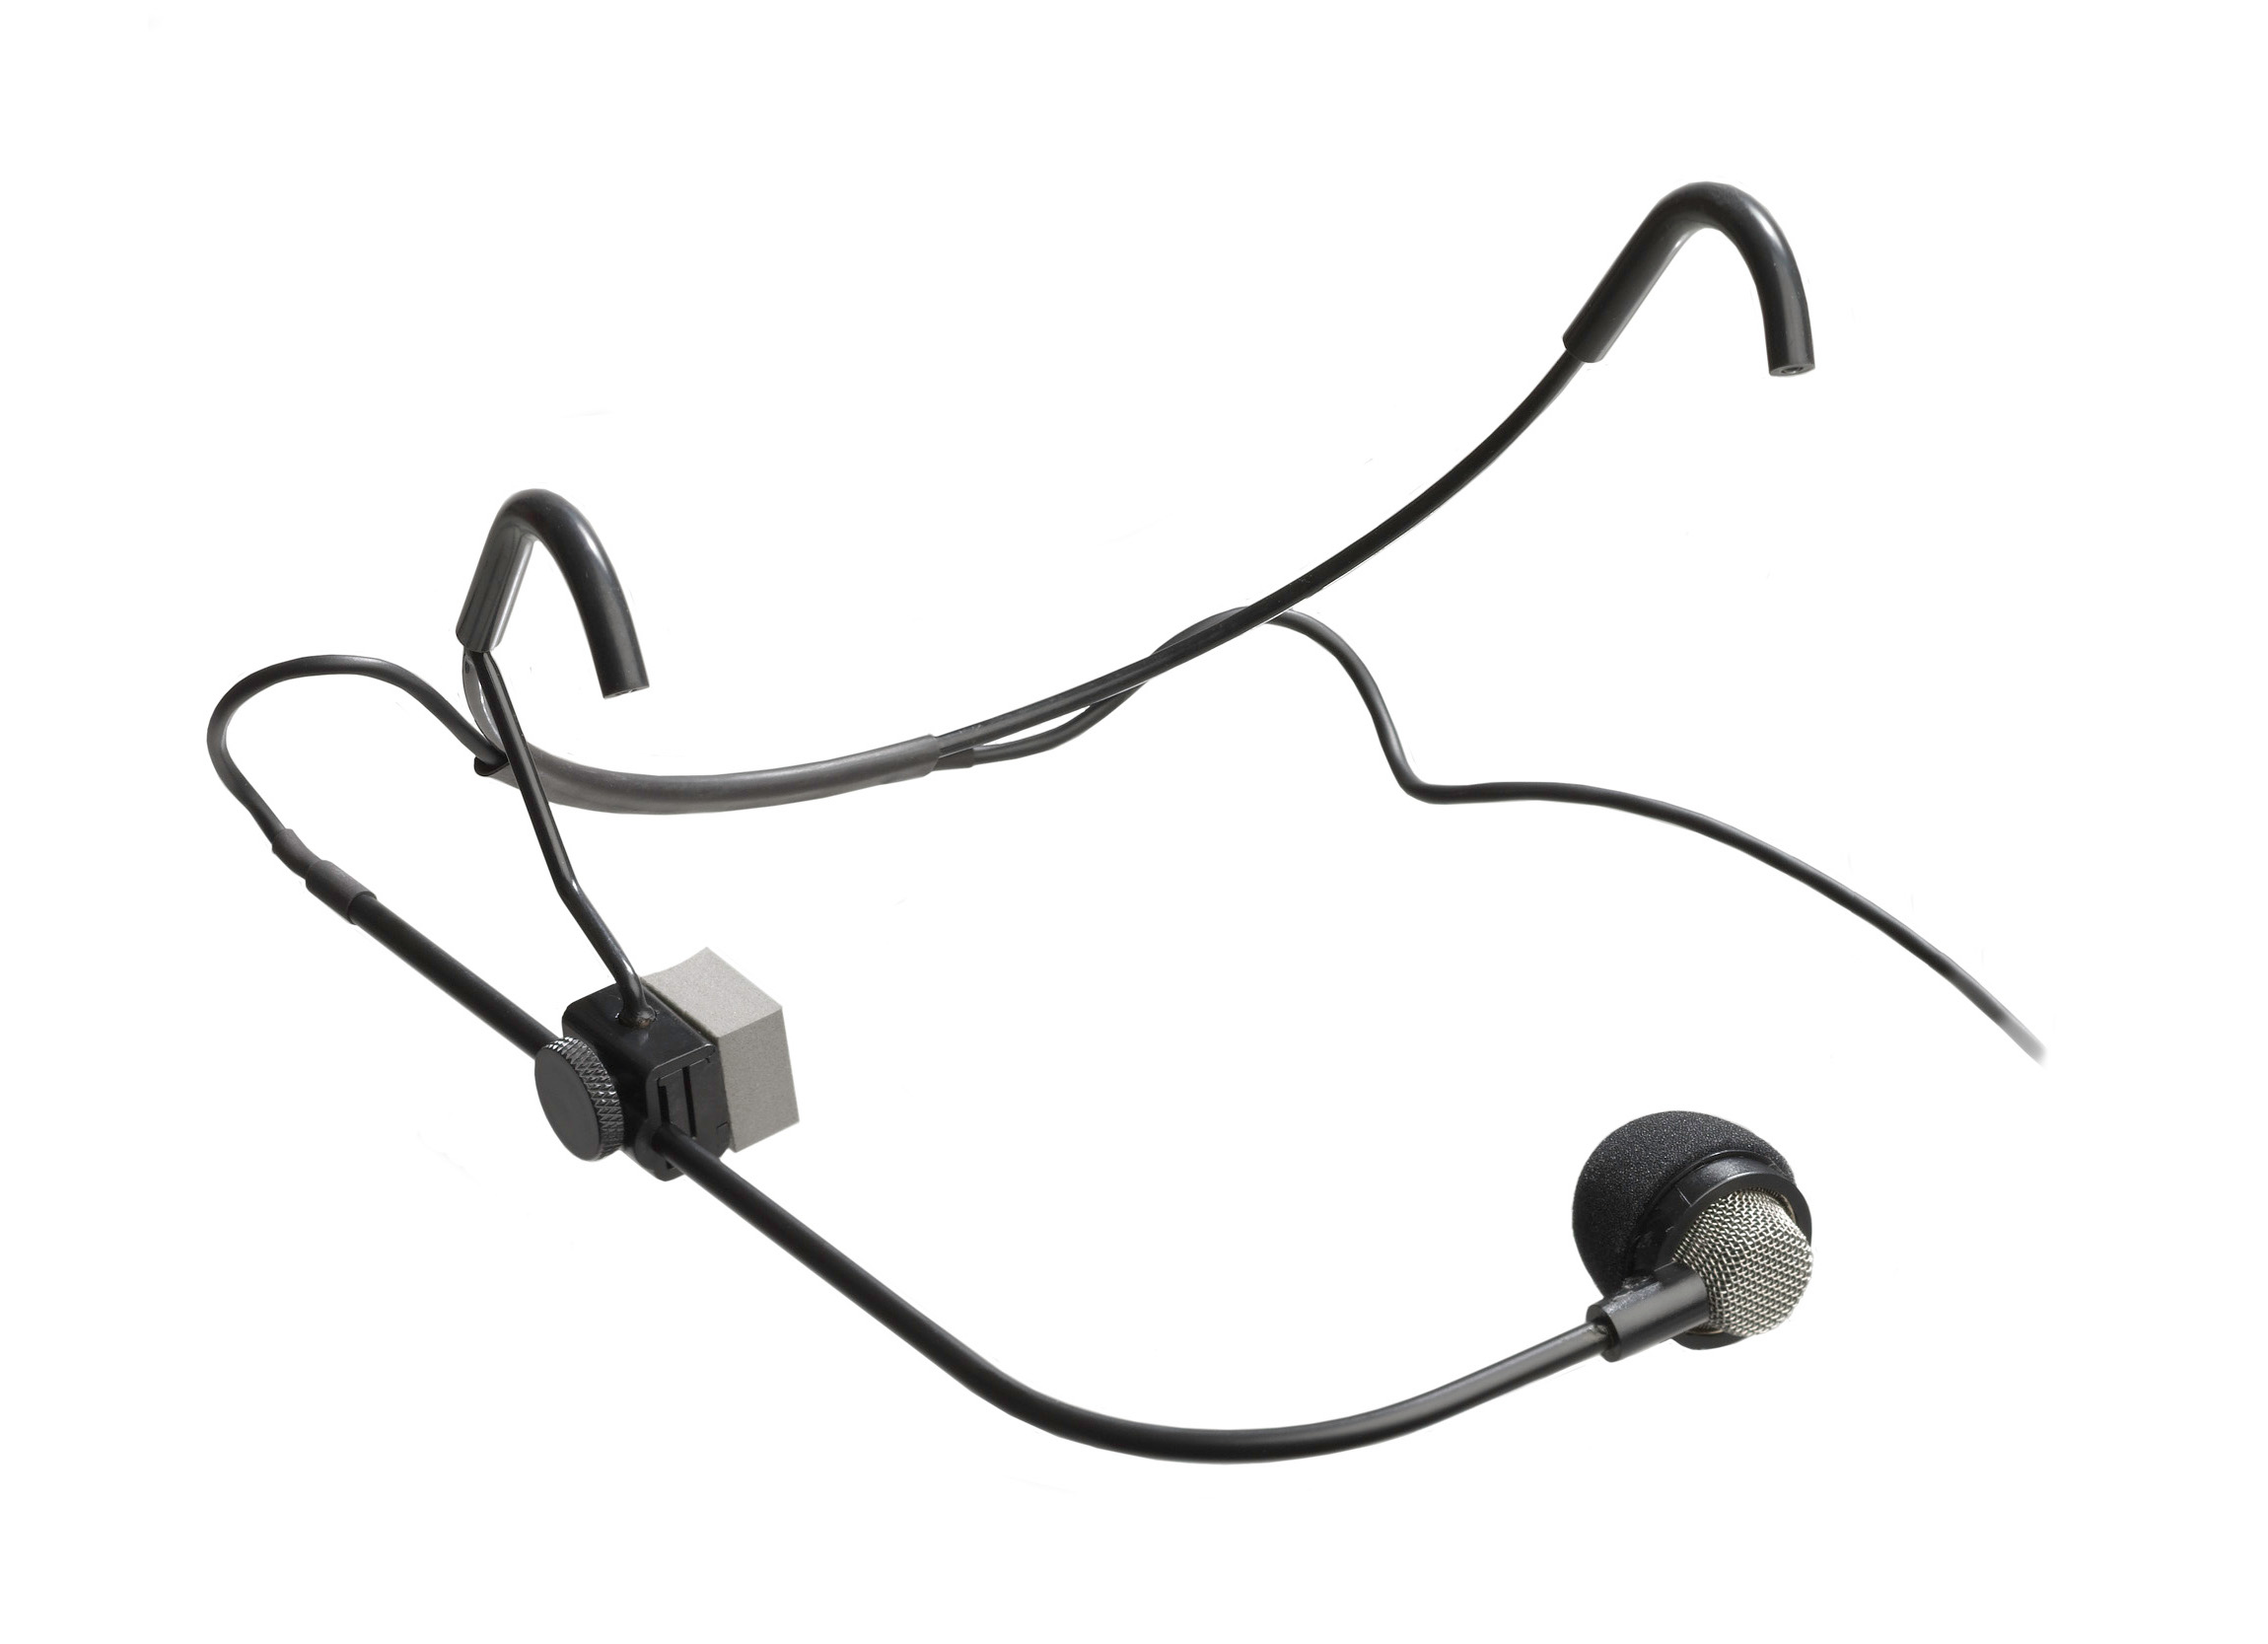 Crown Cm 311a Headset Rentals Chicago And Nationwide